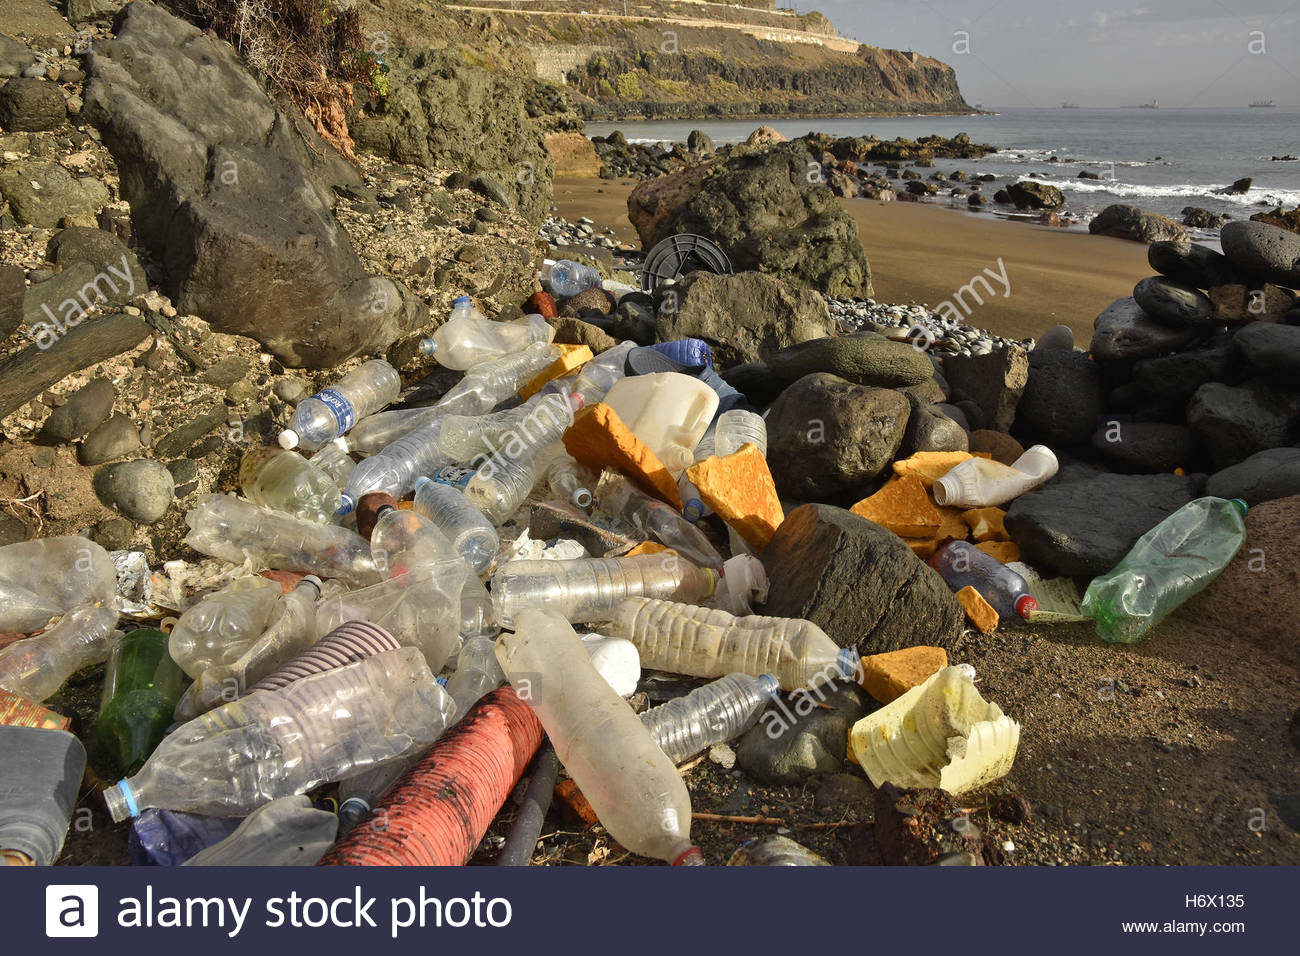 Plastic bottles litter washed up on the shore near Las Palmas Gran Canaria Canary Islands Macaronesia (Spain) - Stock Image